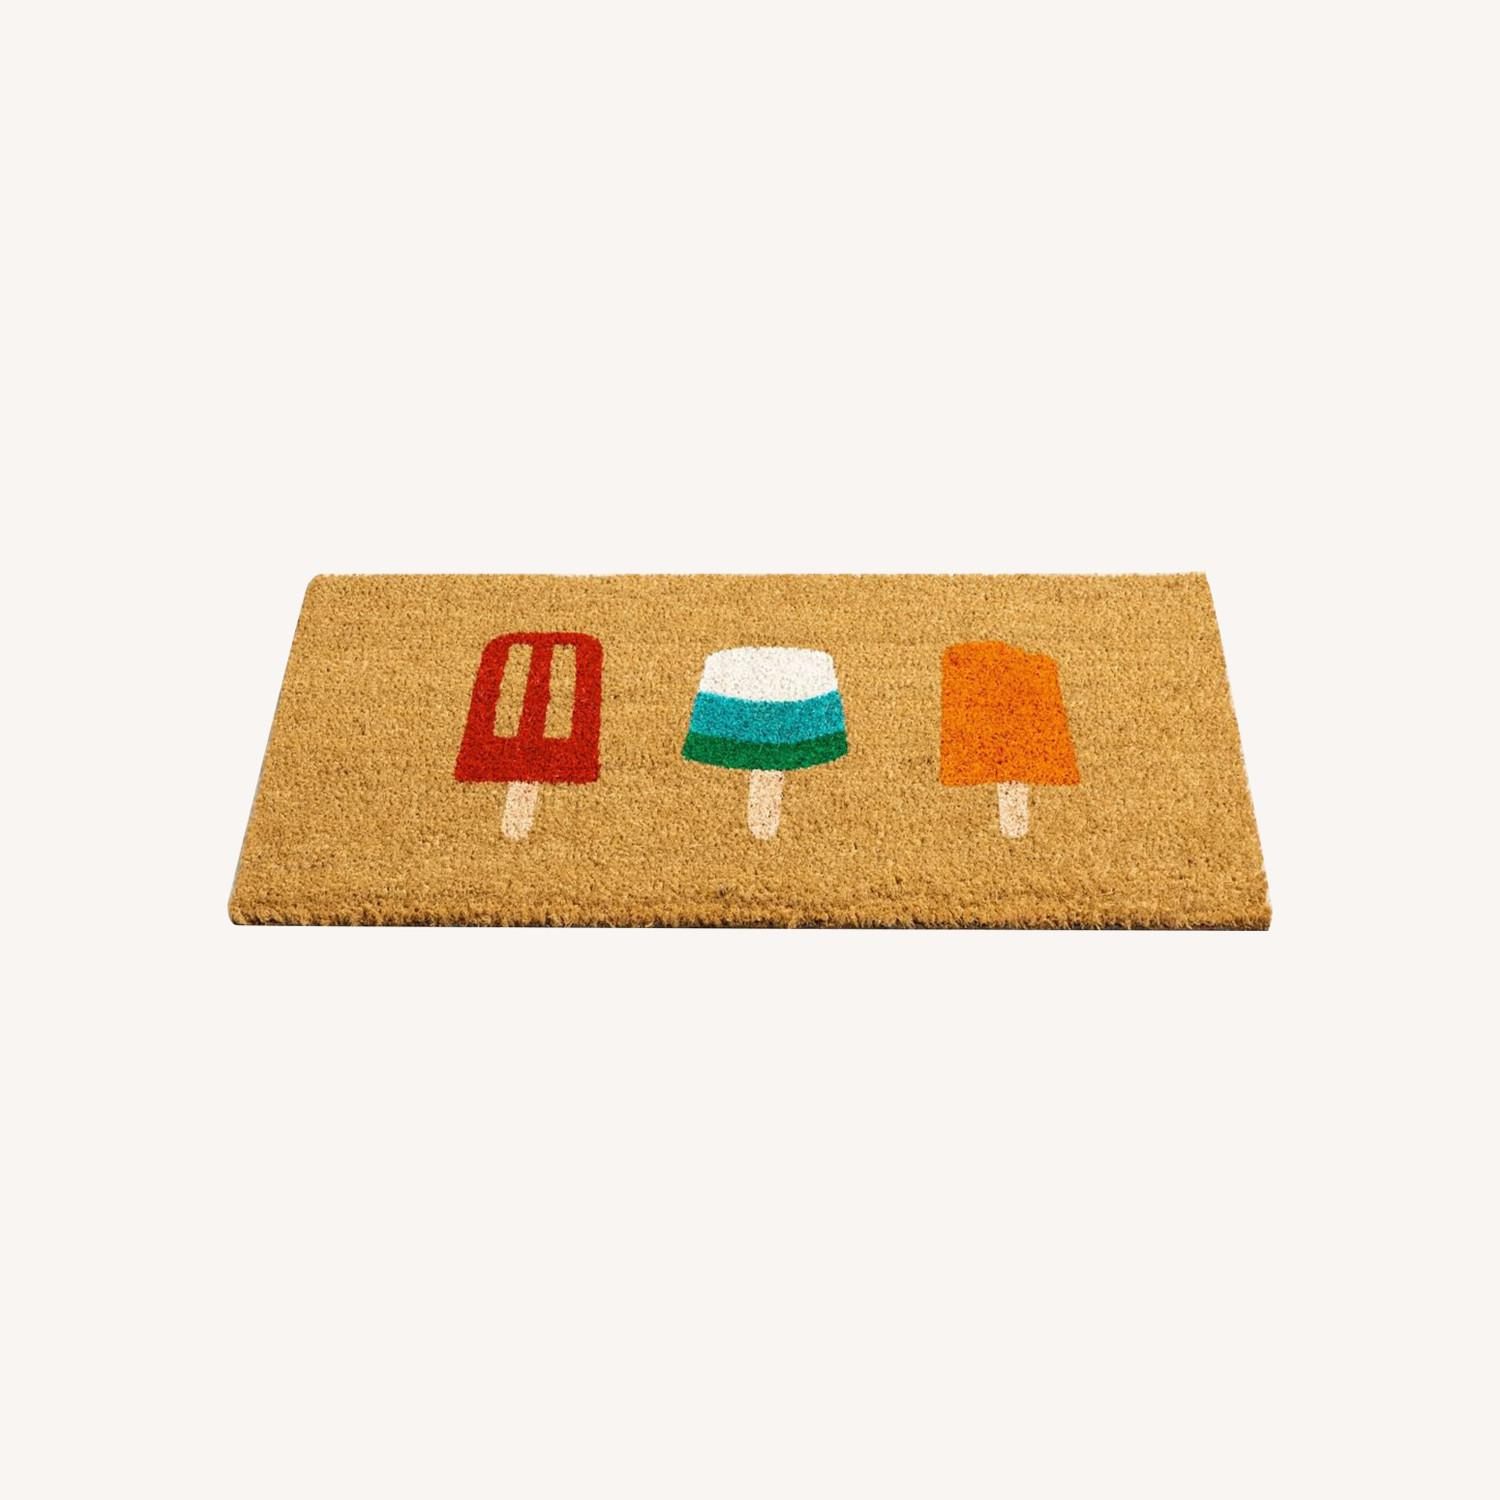 Hand-Painted Popsicle Doormat - image-0